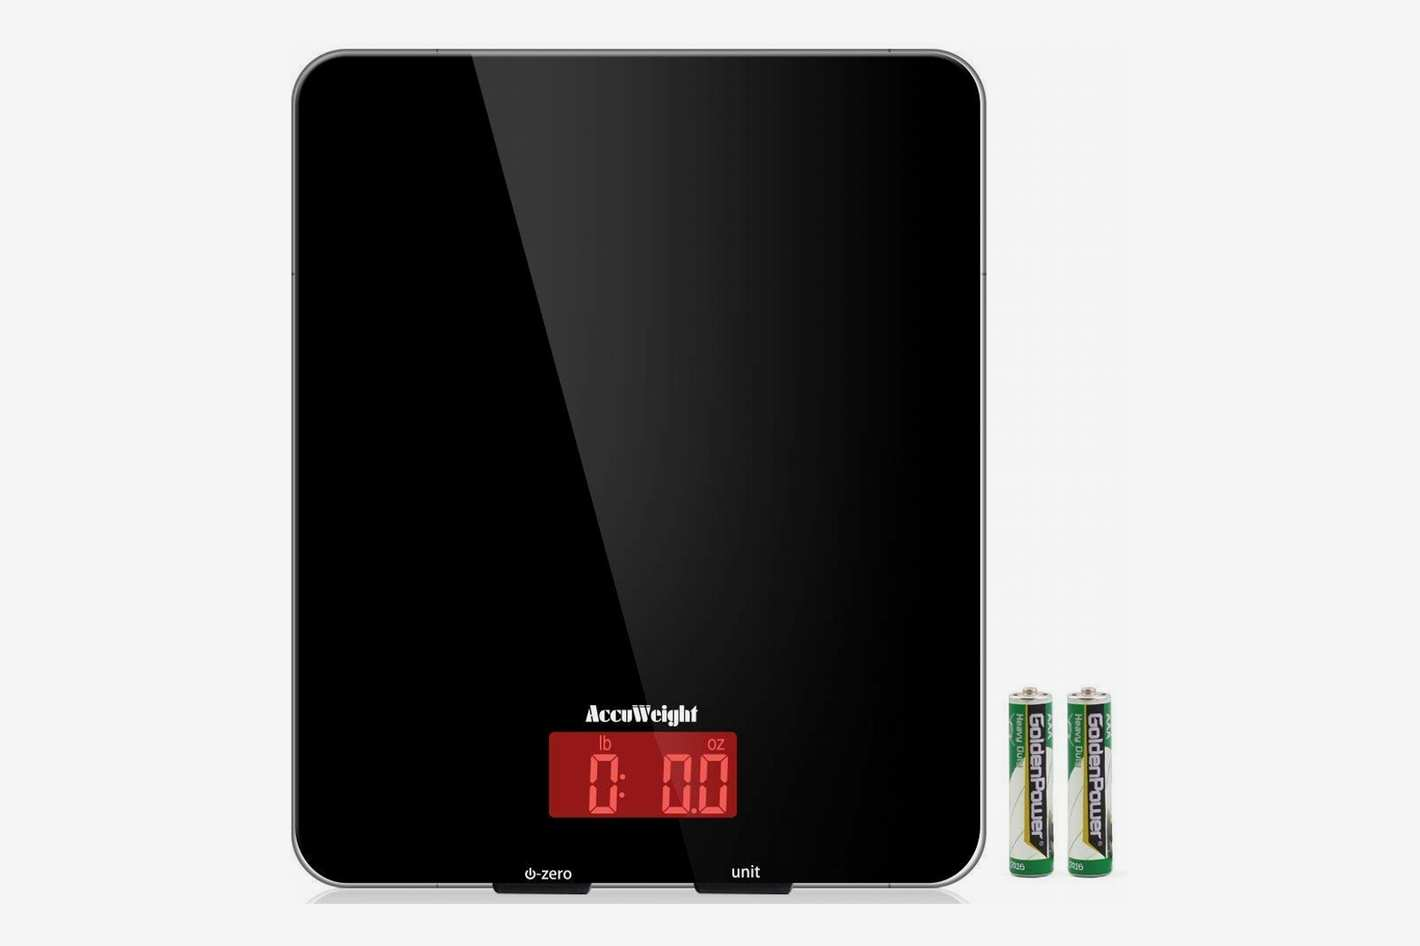 kitchen scale with nutritional facts display